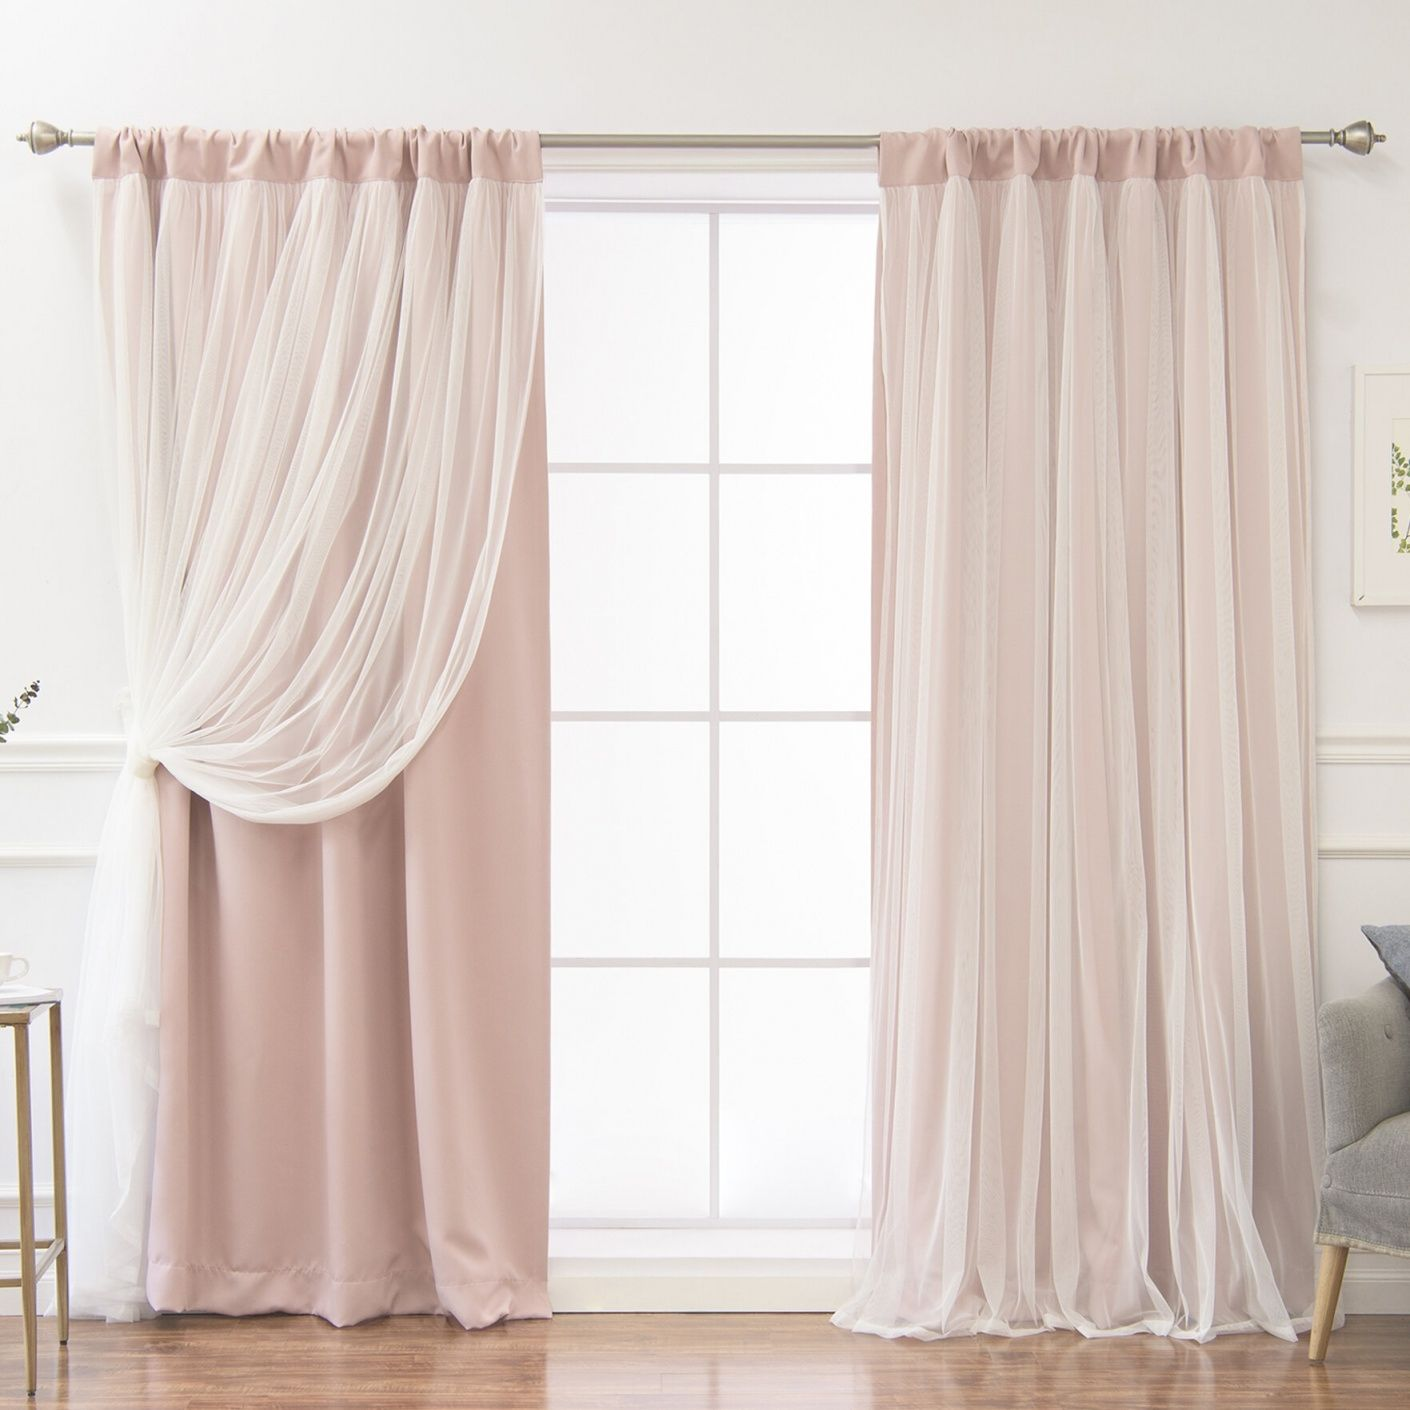 Unique Cute Curtains Aesthetic In 2020 Cool Curtains Rod Pocket